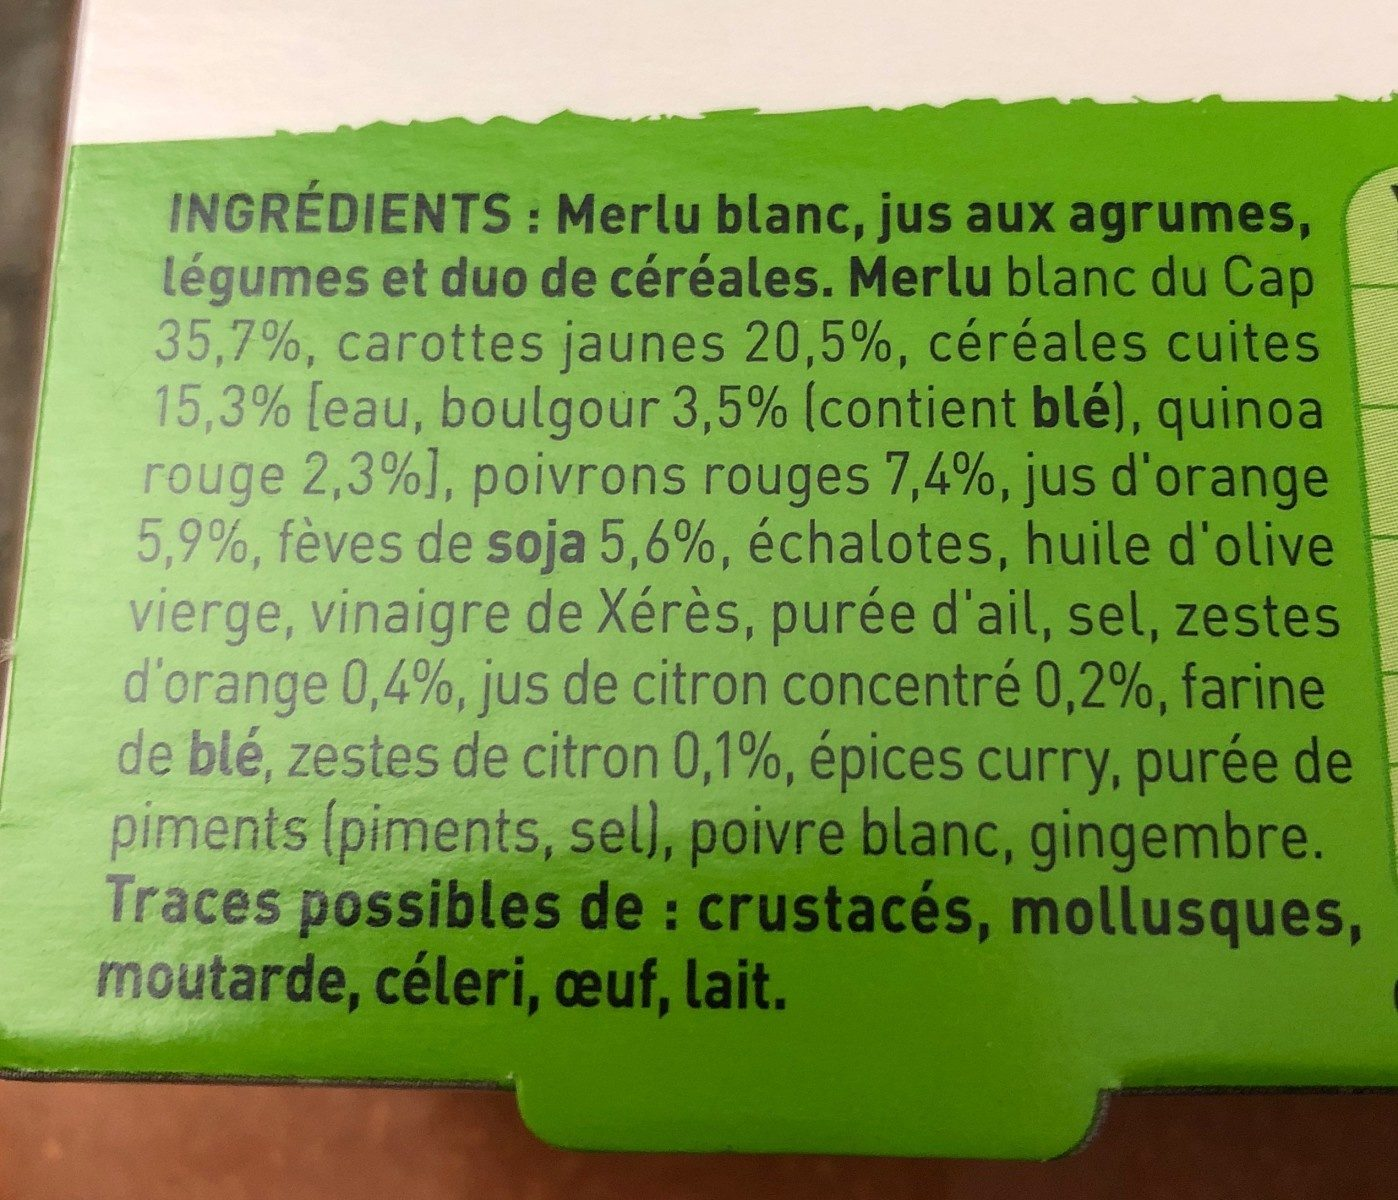 Mon Tendre Merlu Blanc, Jus aux agrumes - Ingredients